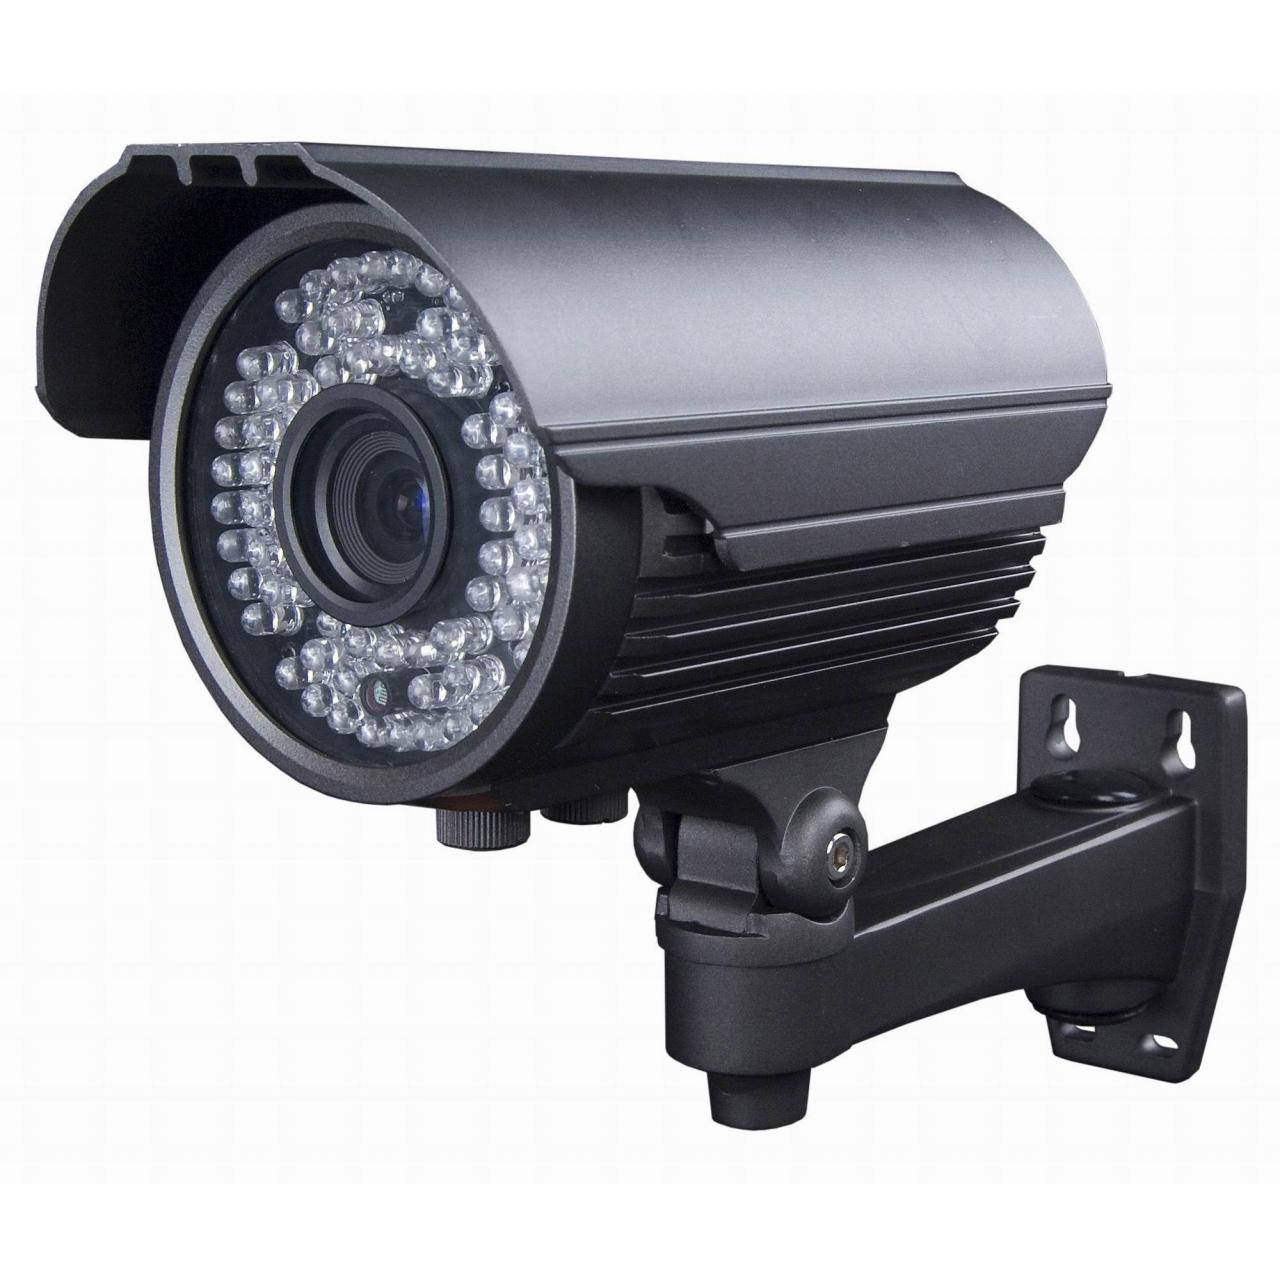 Buy CAMERA OUTDOOR SECURITY at wholesale prices